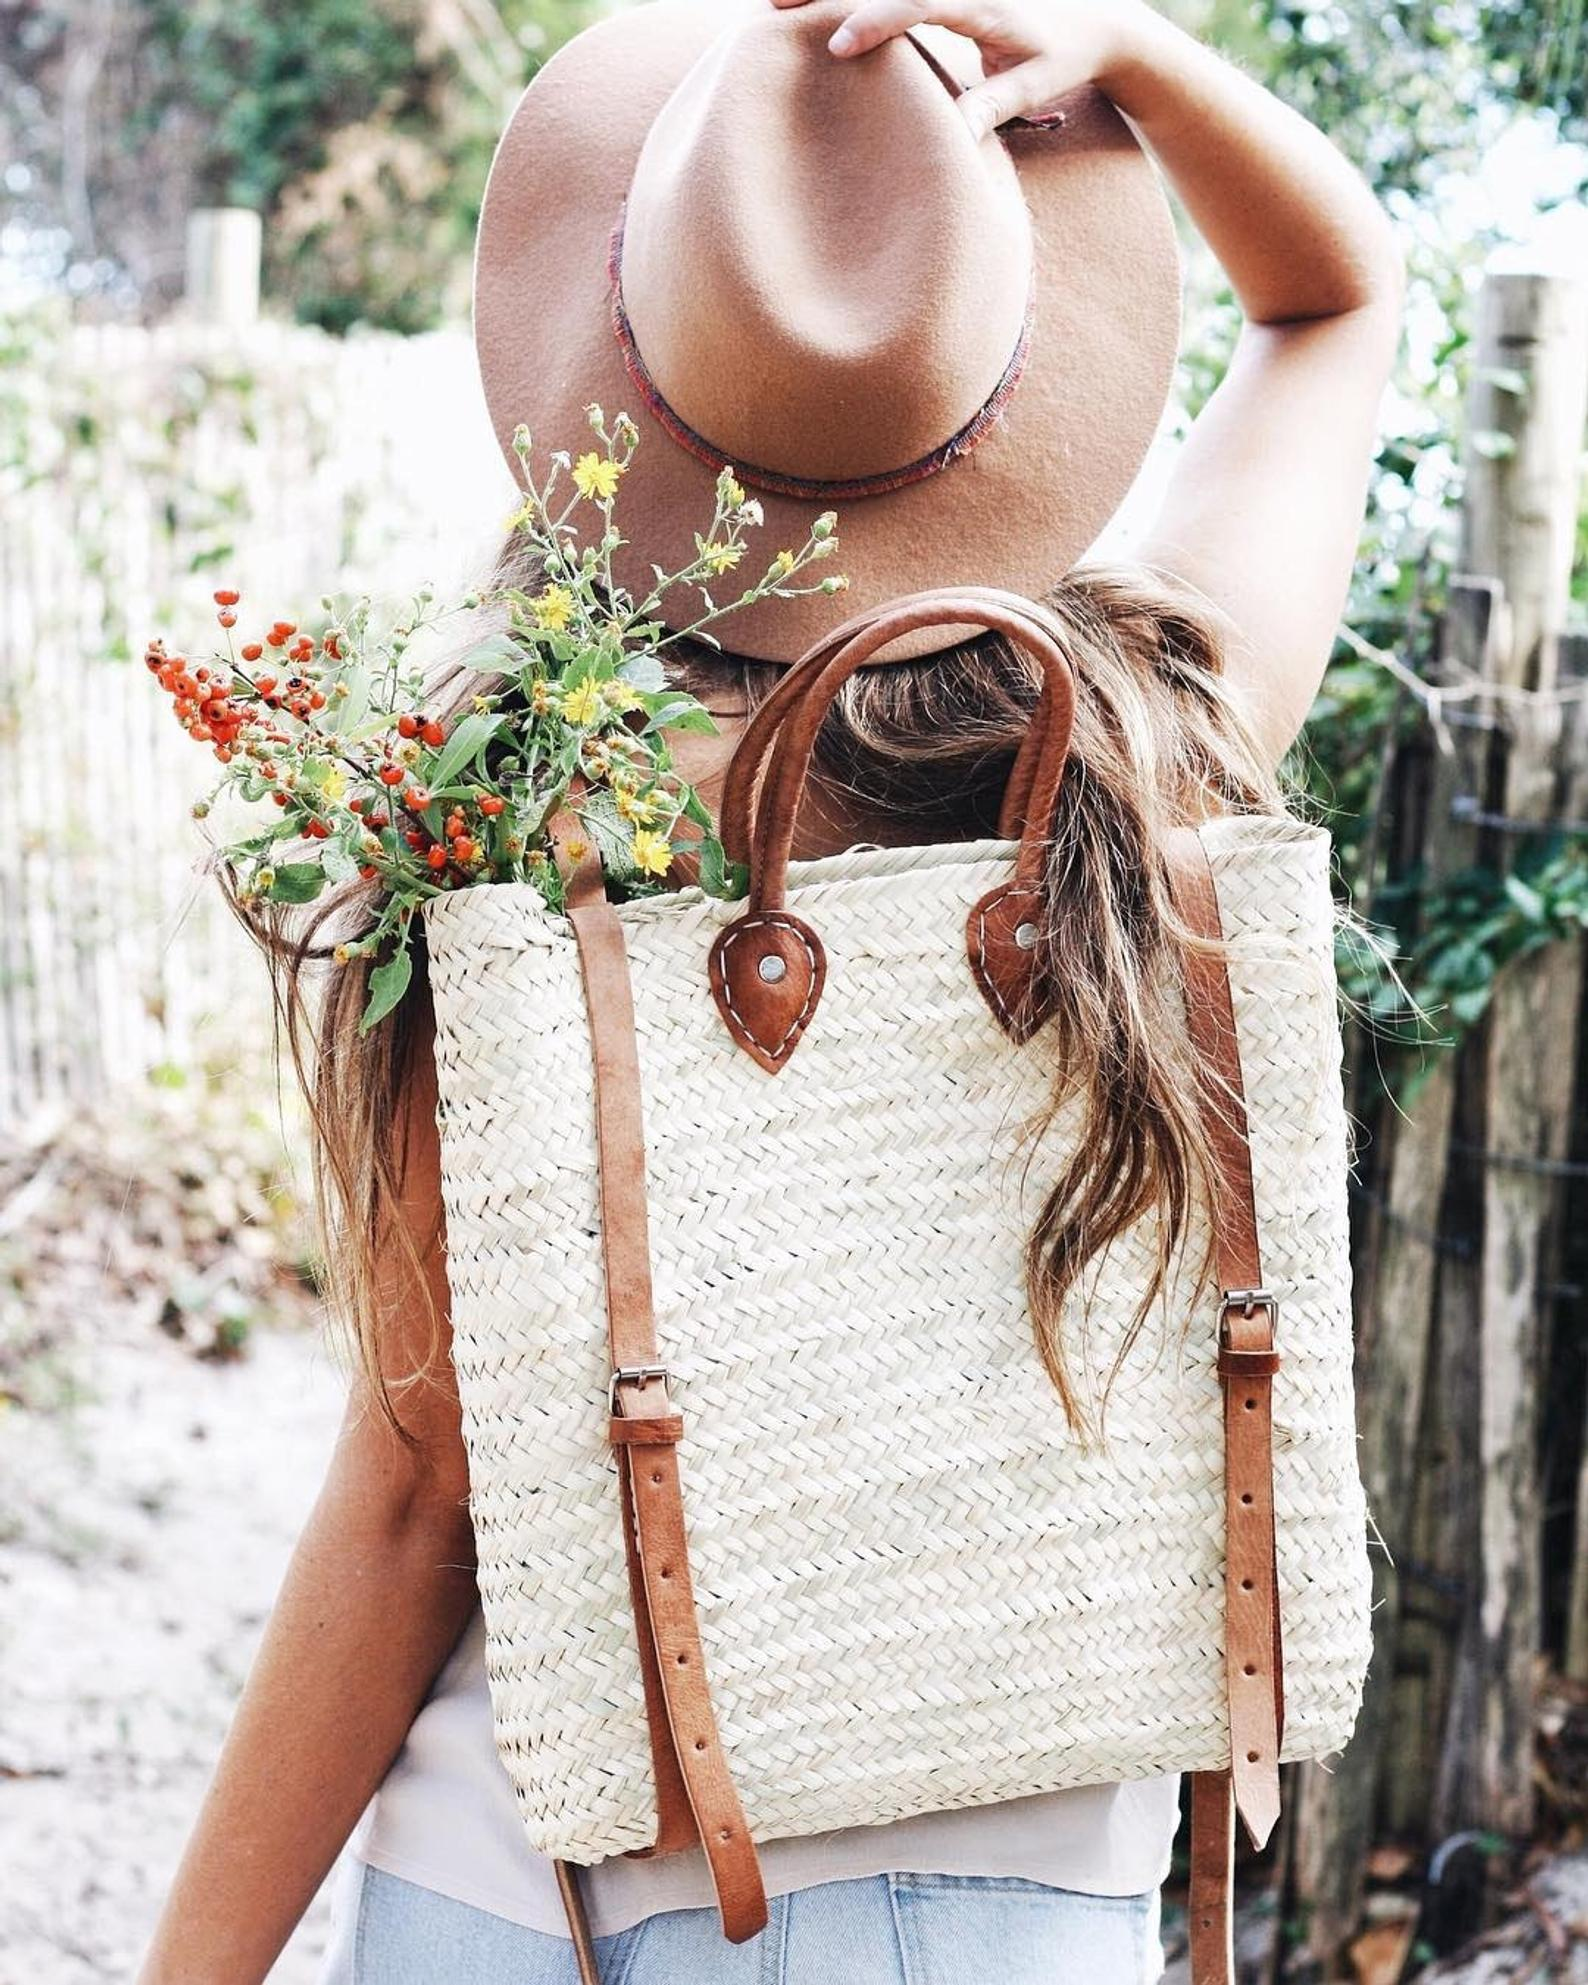 Handmade Straw Backpack By Woven Finds Co.